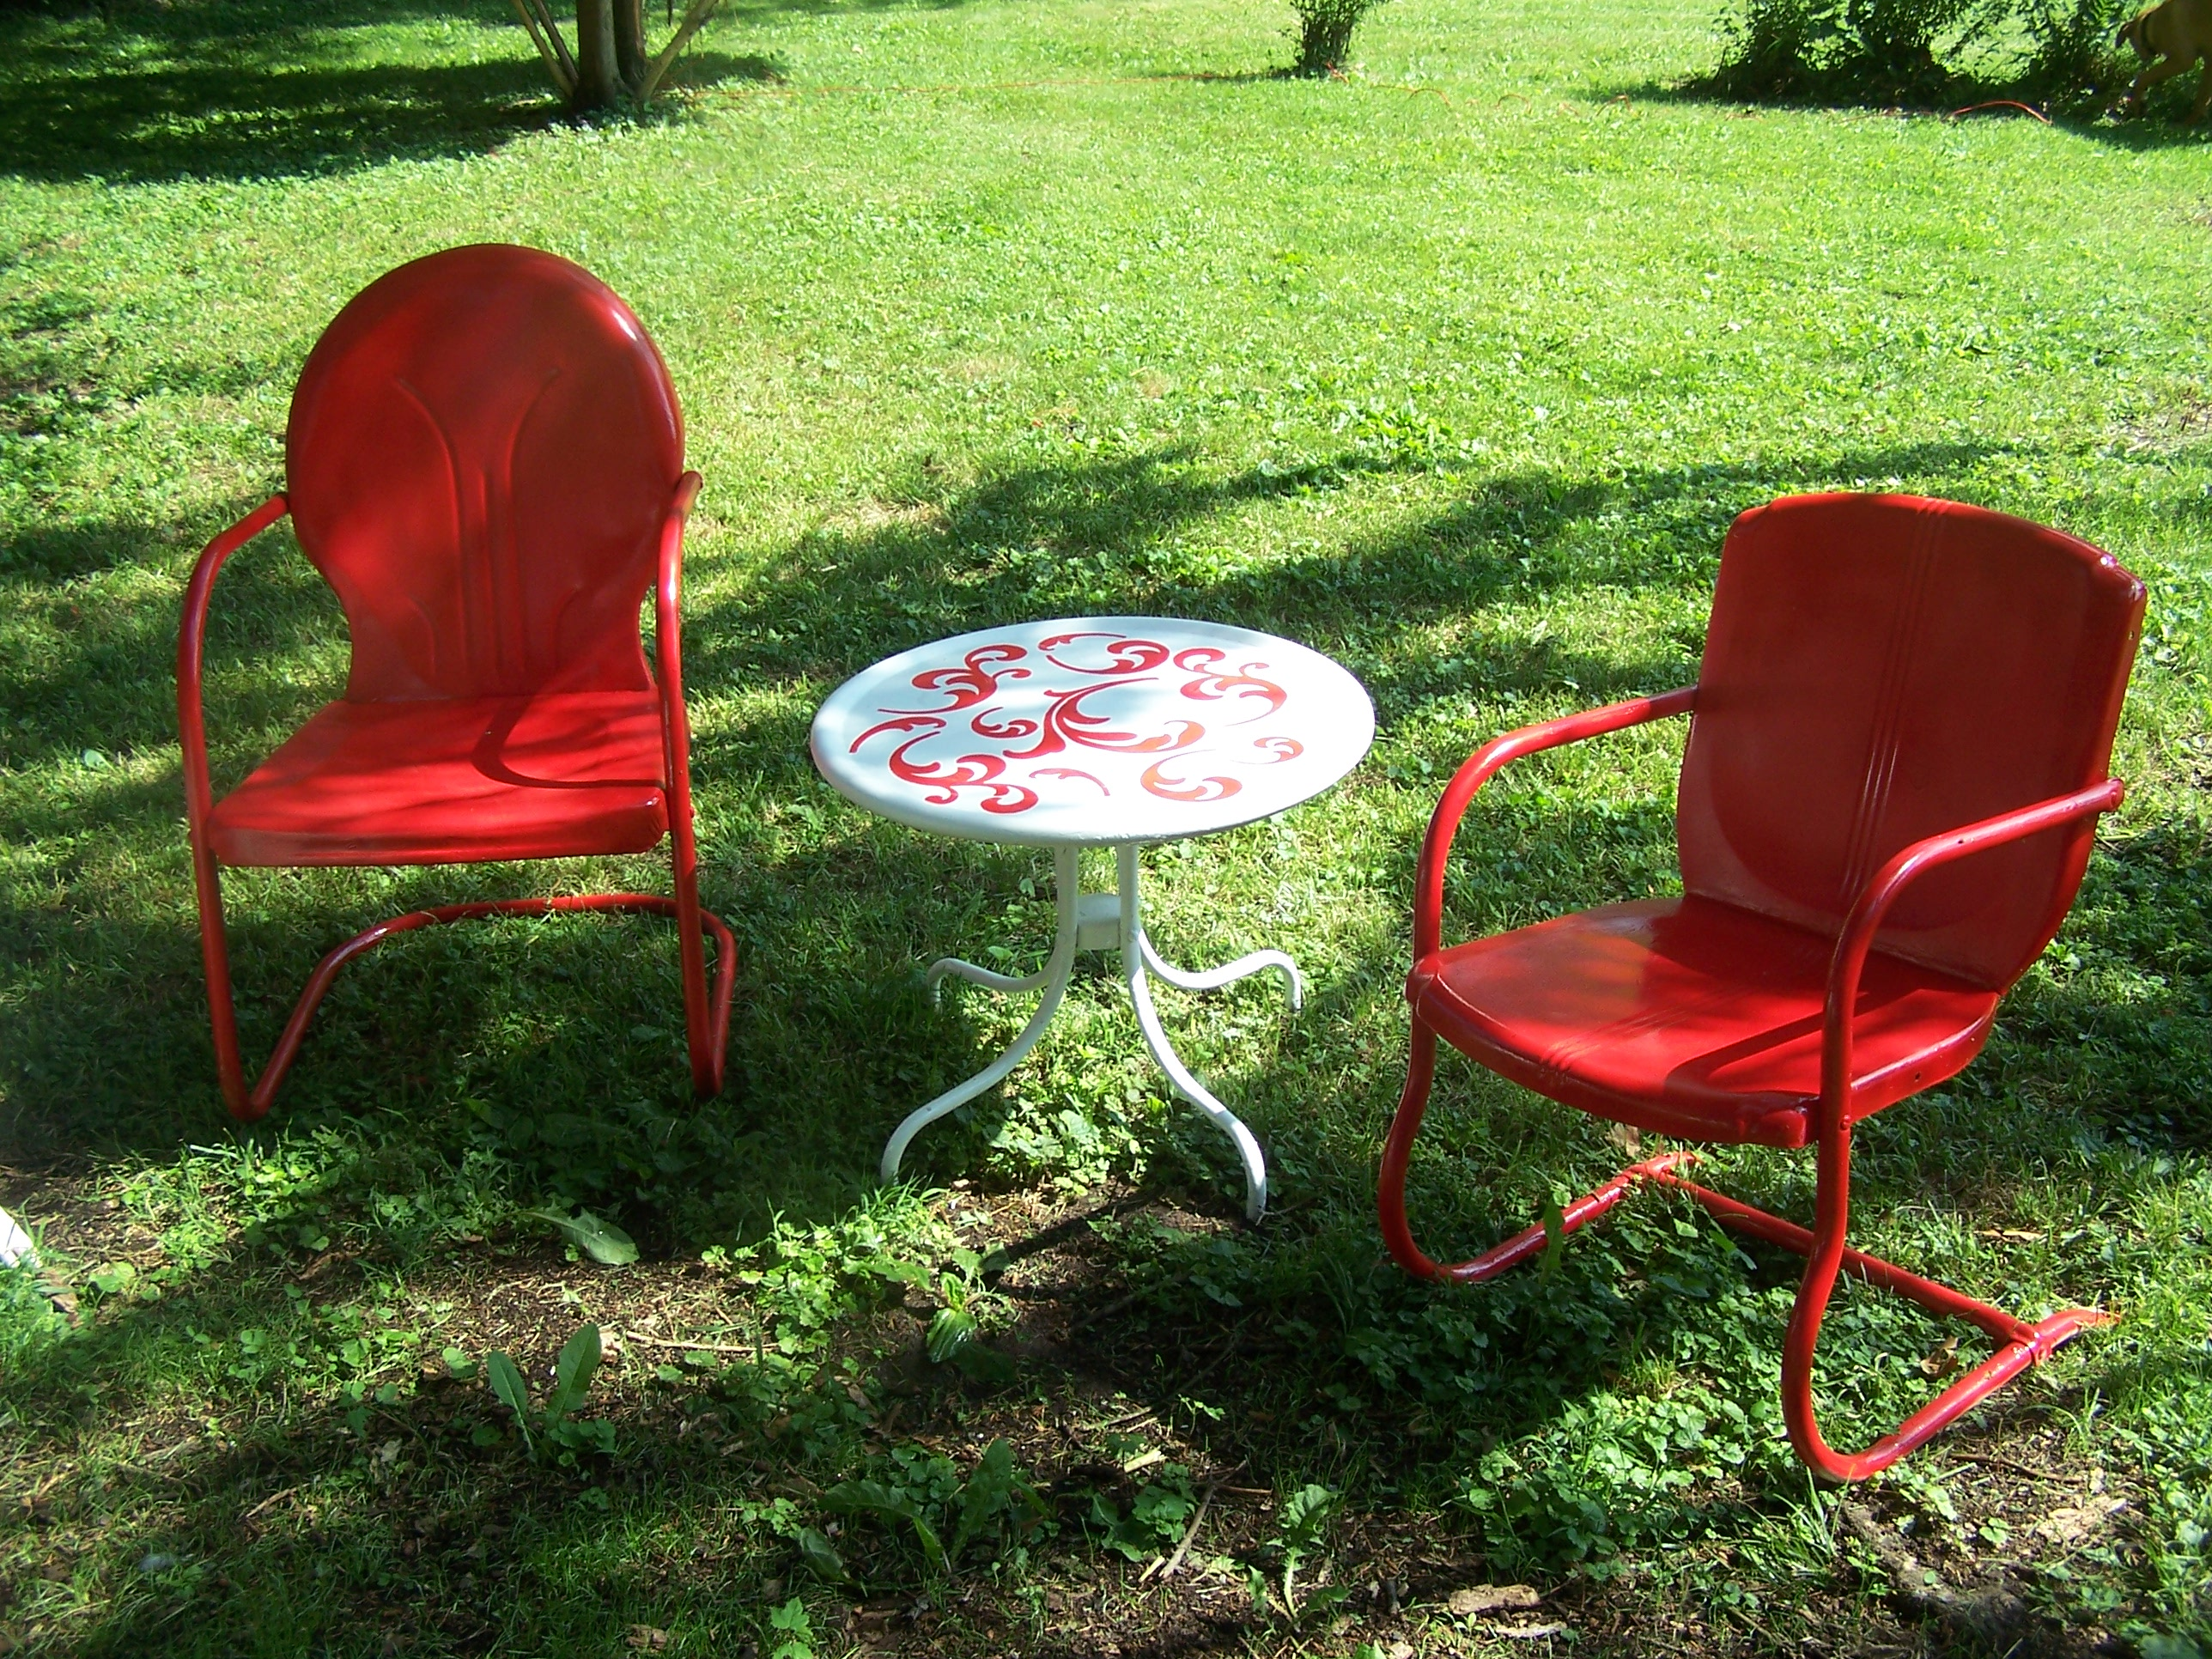 Retro Lawn Chairs Lawn Chair Paint Project Make Mine Eclectic